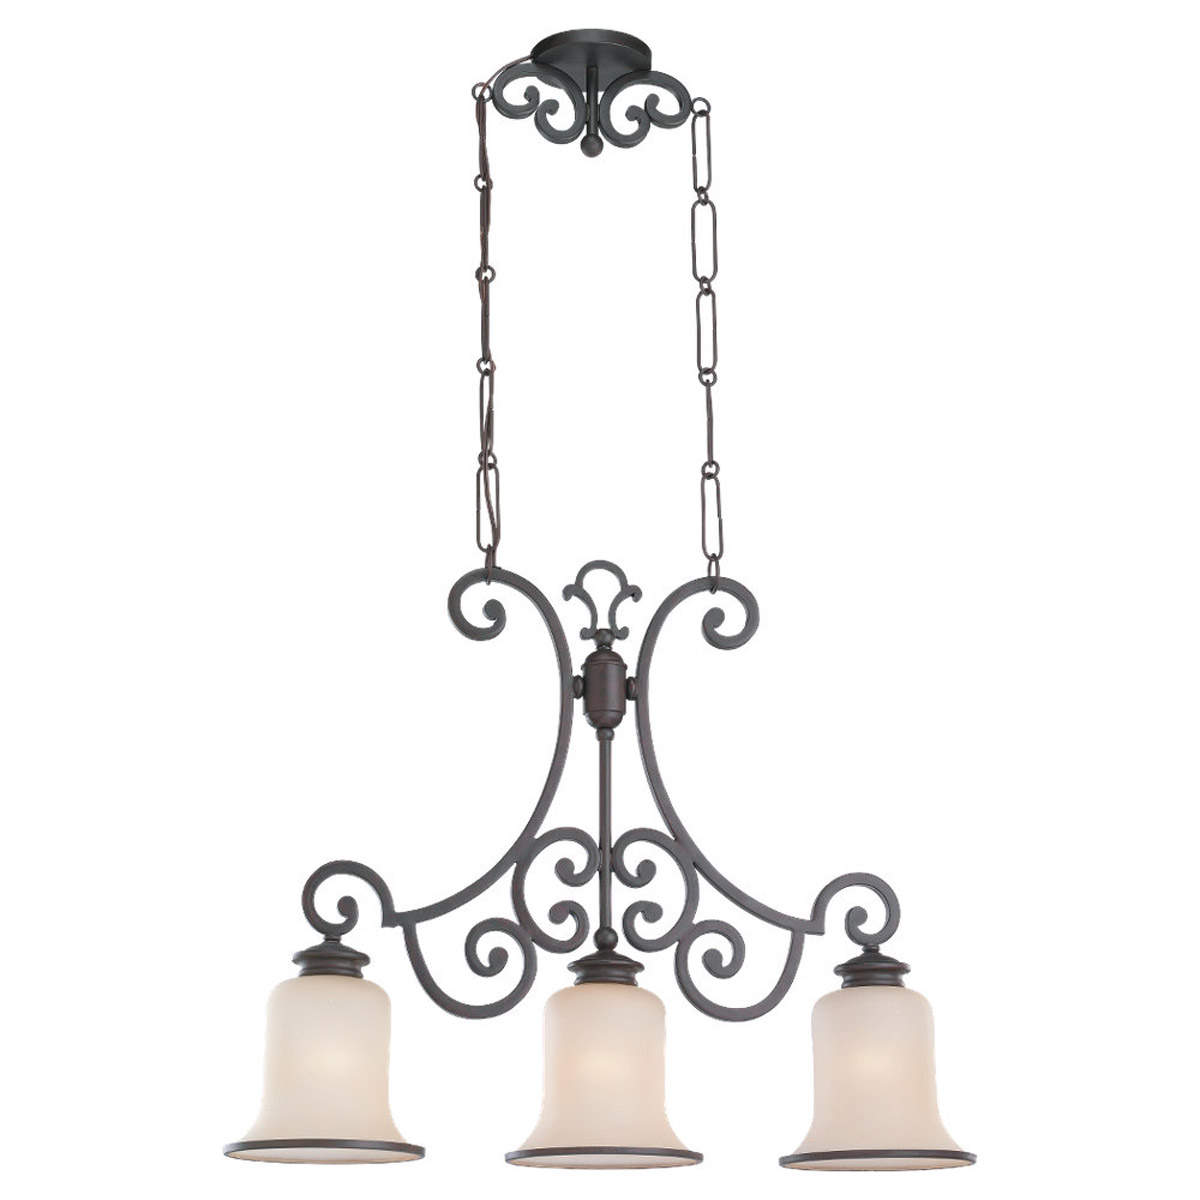 Sea Gull Lighting Acadia 3 Light Billiard Pendant in Misted Bronze 66145BLE-814